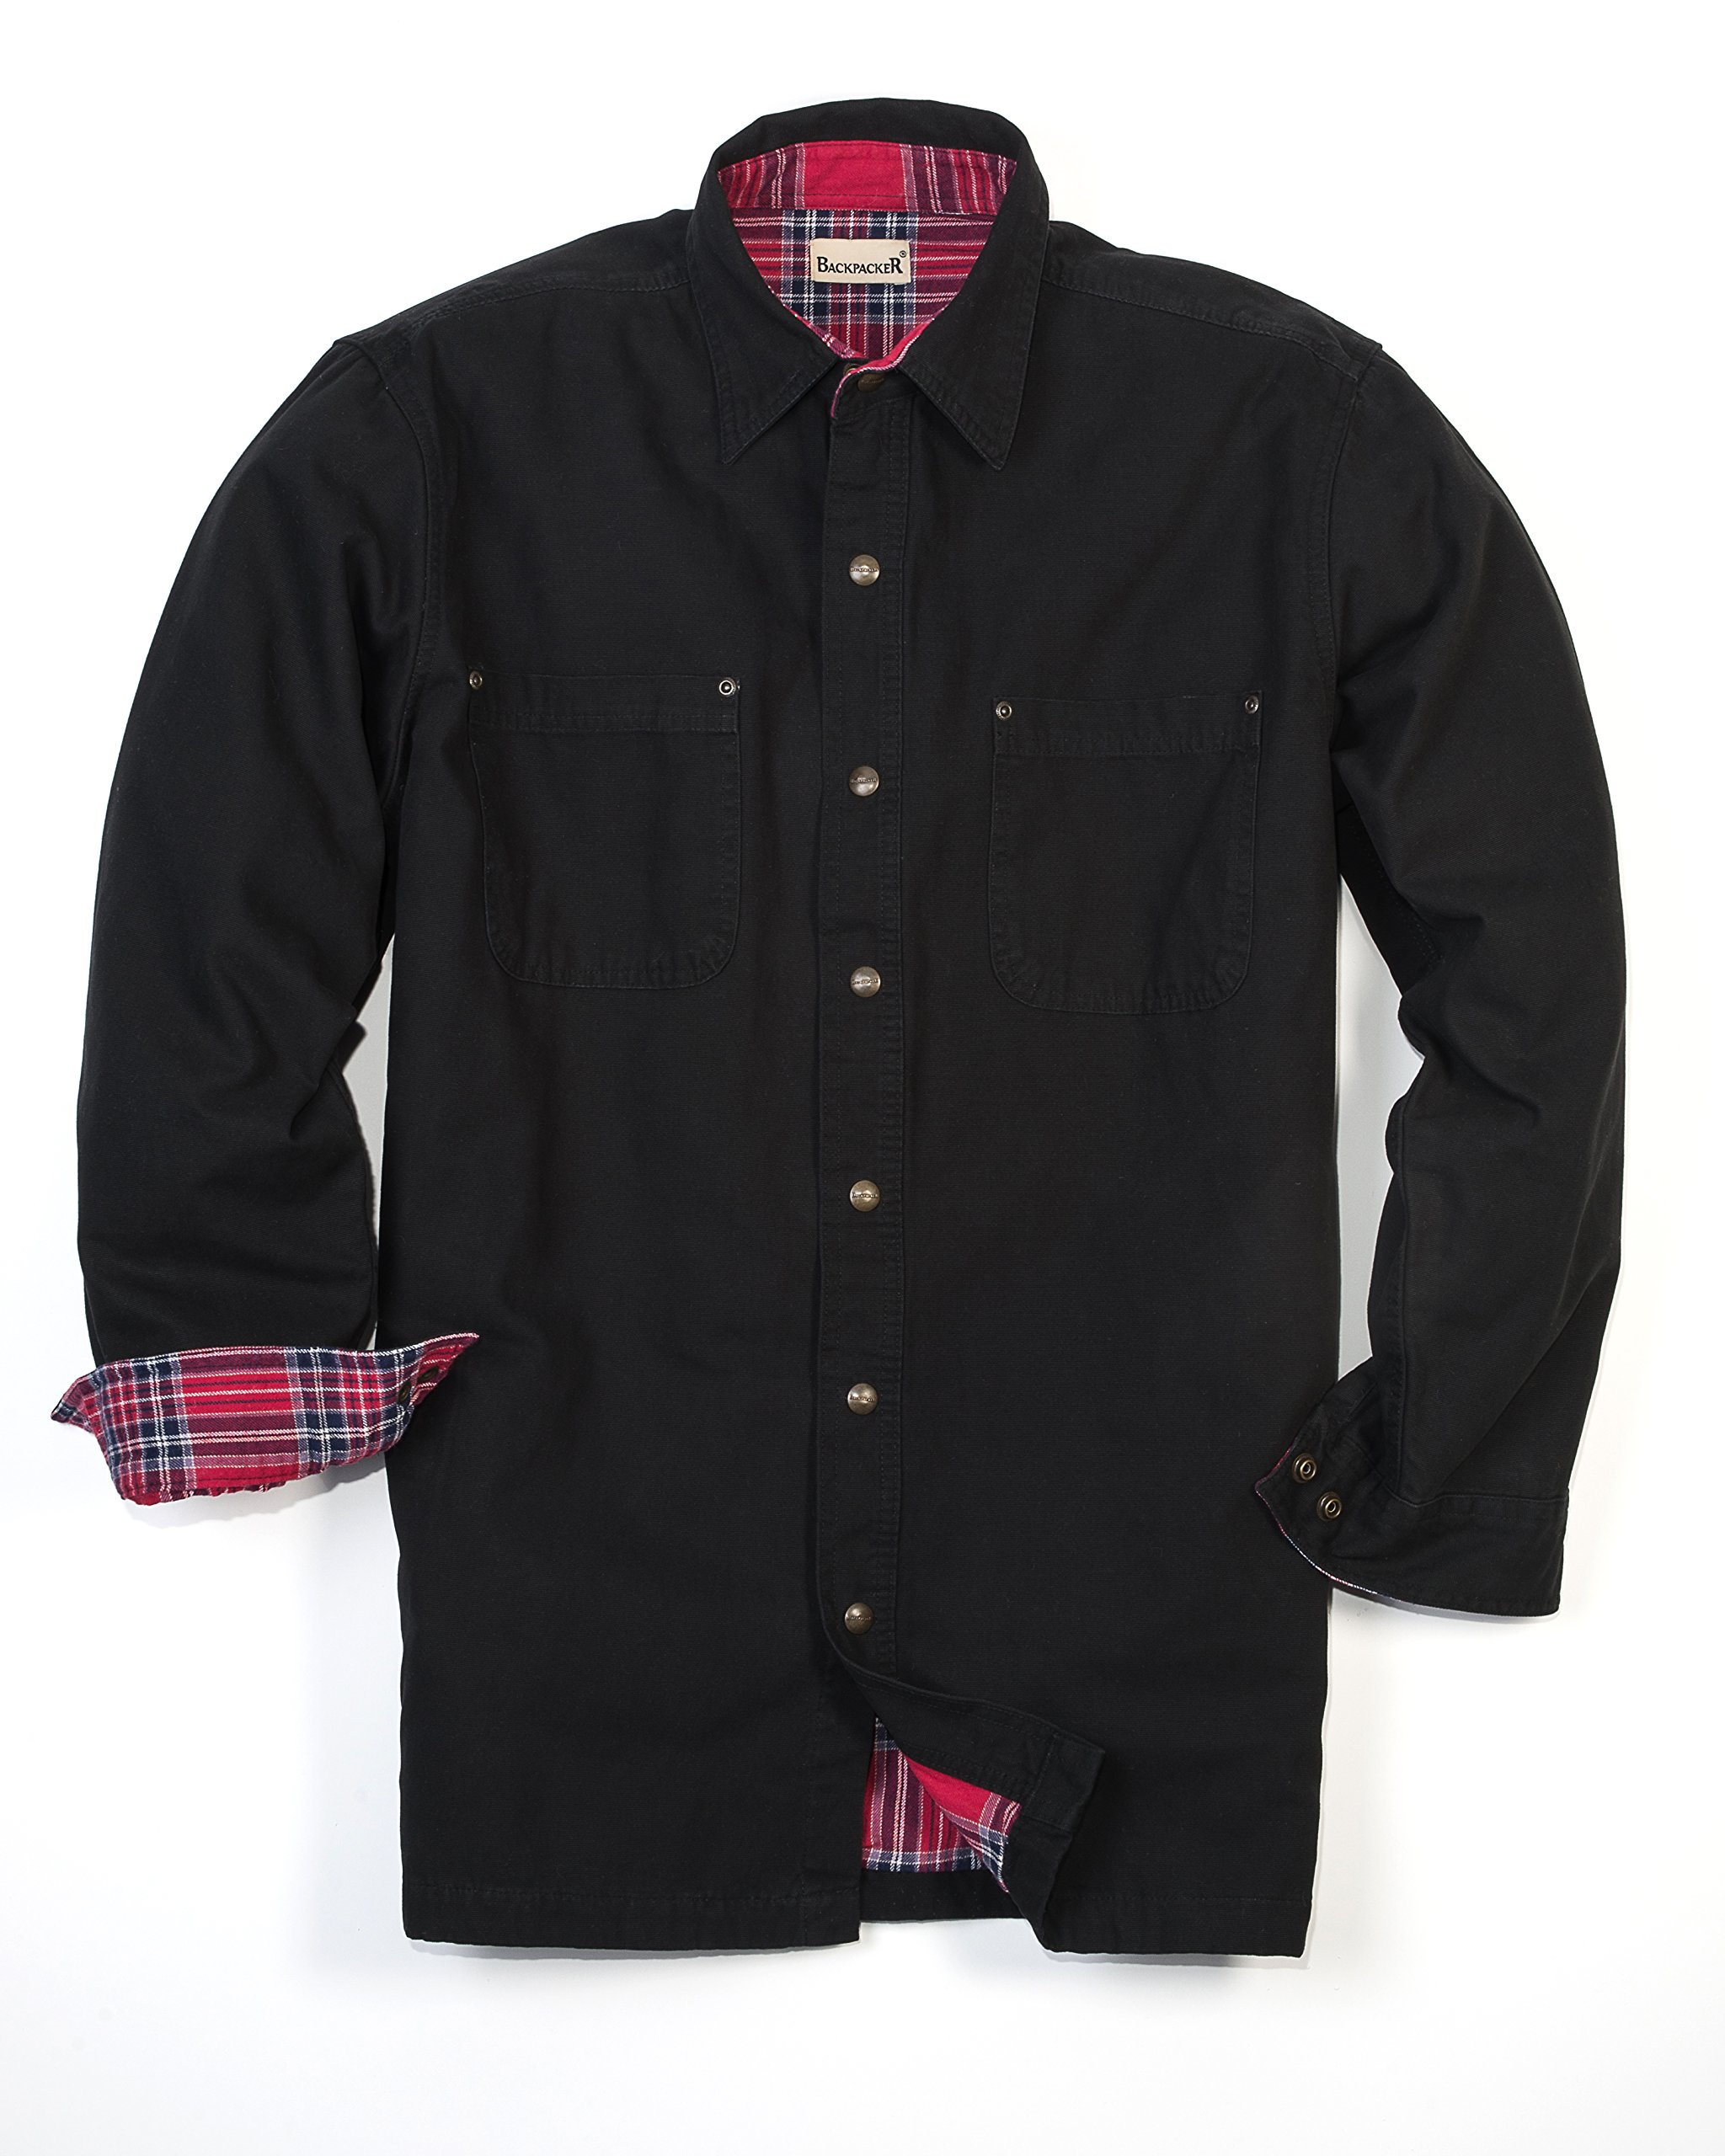 Backpacker Canvas/Flannel Lined Shirt Jacket, Black, Medium by Backpacker